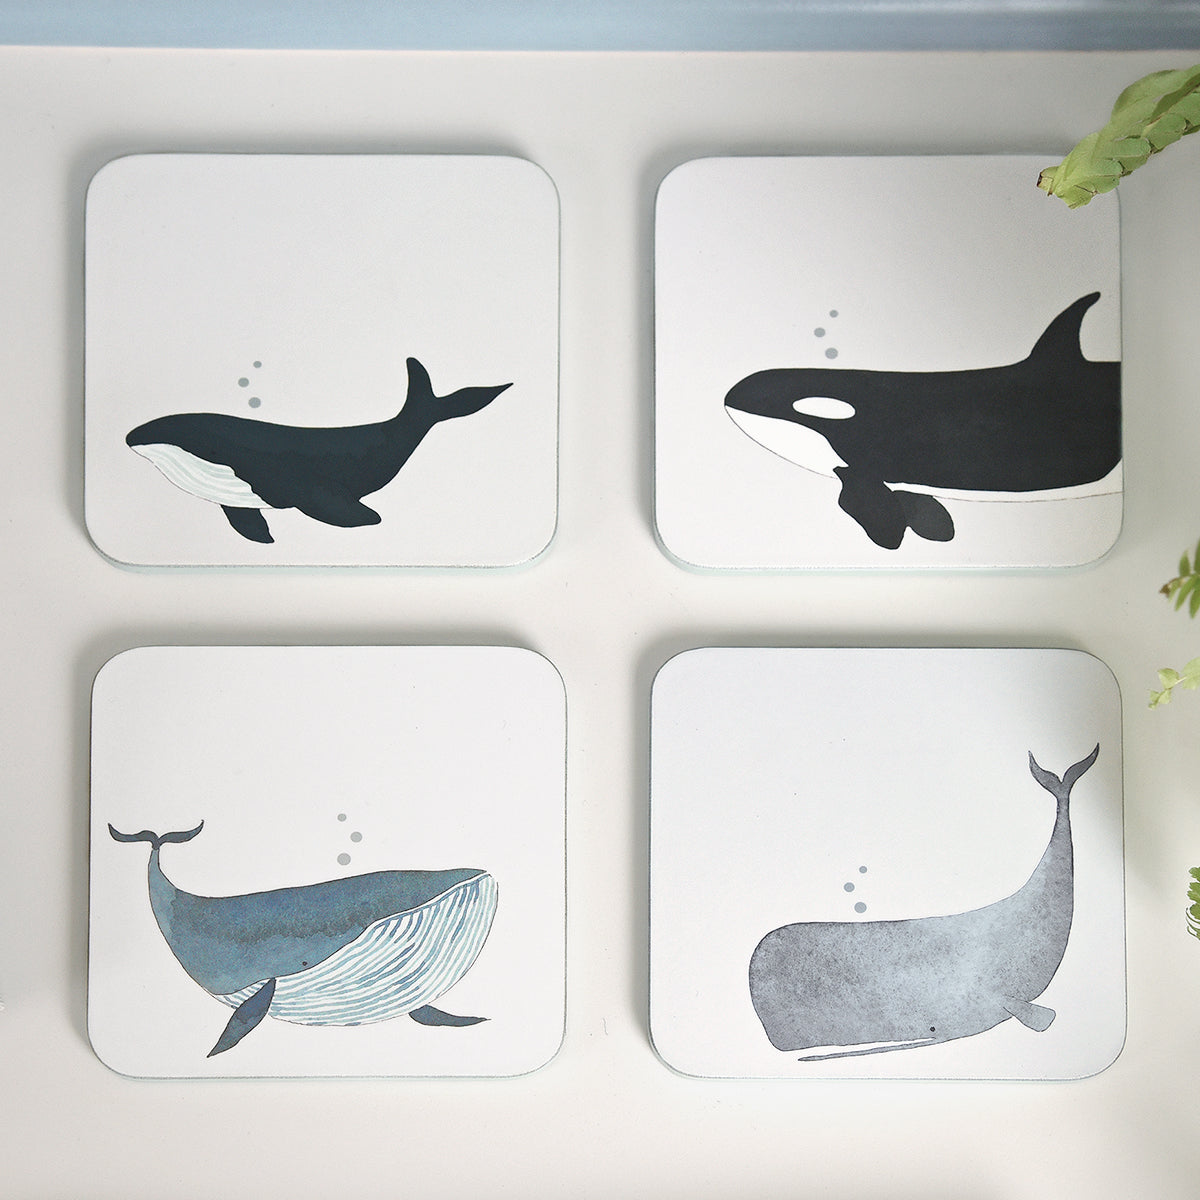 Whales Coasters (Set of 4)